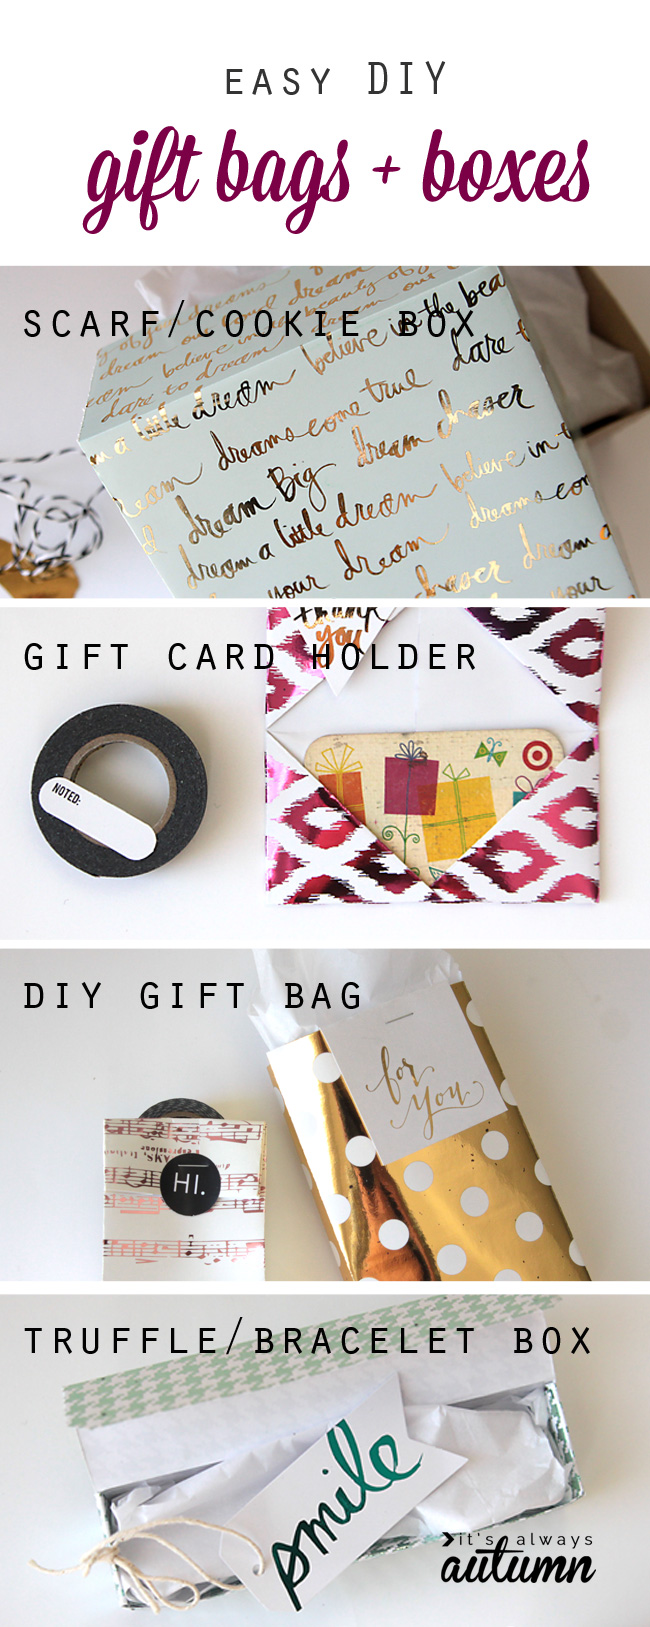 easy diy gift bag boxes and gift card holder  it's